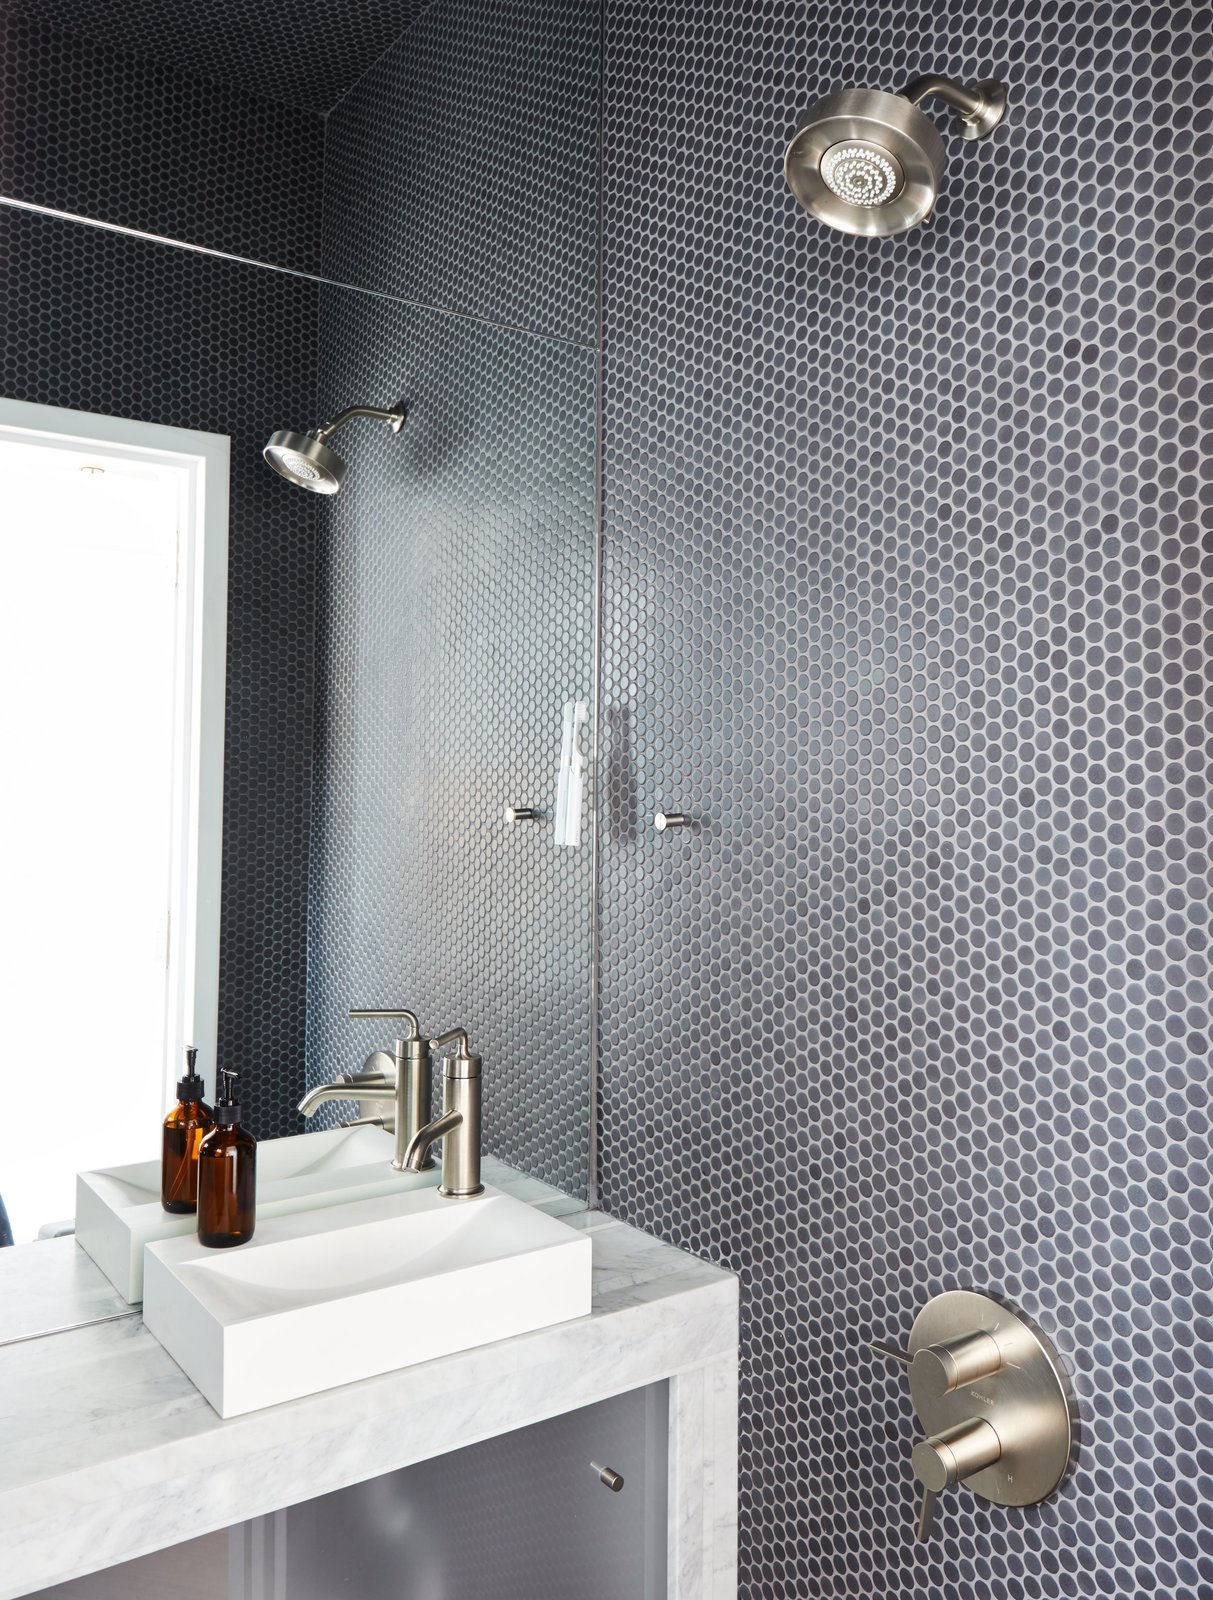 The wet bathroom, clad in Savoy penny tile by Ann Sacks, helped optimize the home's petite footprint. Tagged: Bath Room, Open Shower, Mosaic Tile Wall, Marble Counter, and Vessel Sink.  Photo 11 of 16 in At His 350-Square-Foot Apartment, Small Space Champion Graham Hill Practices What He Preaches